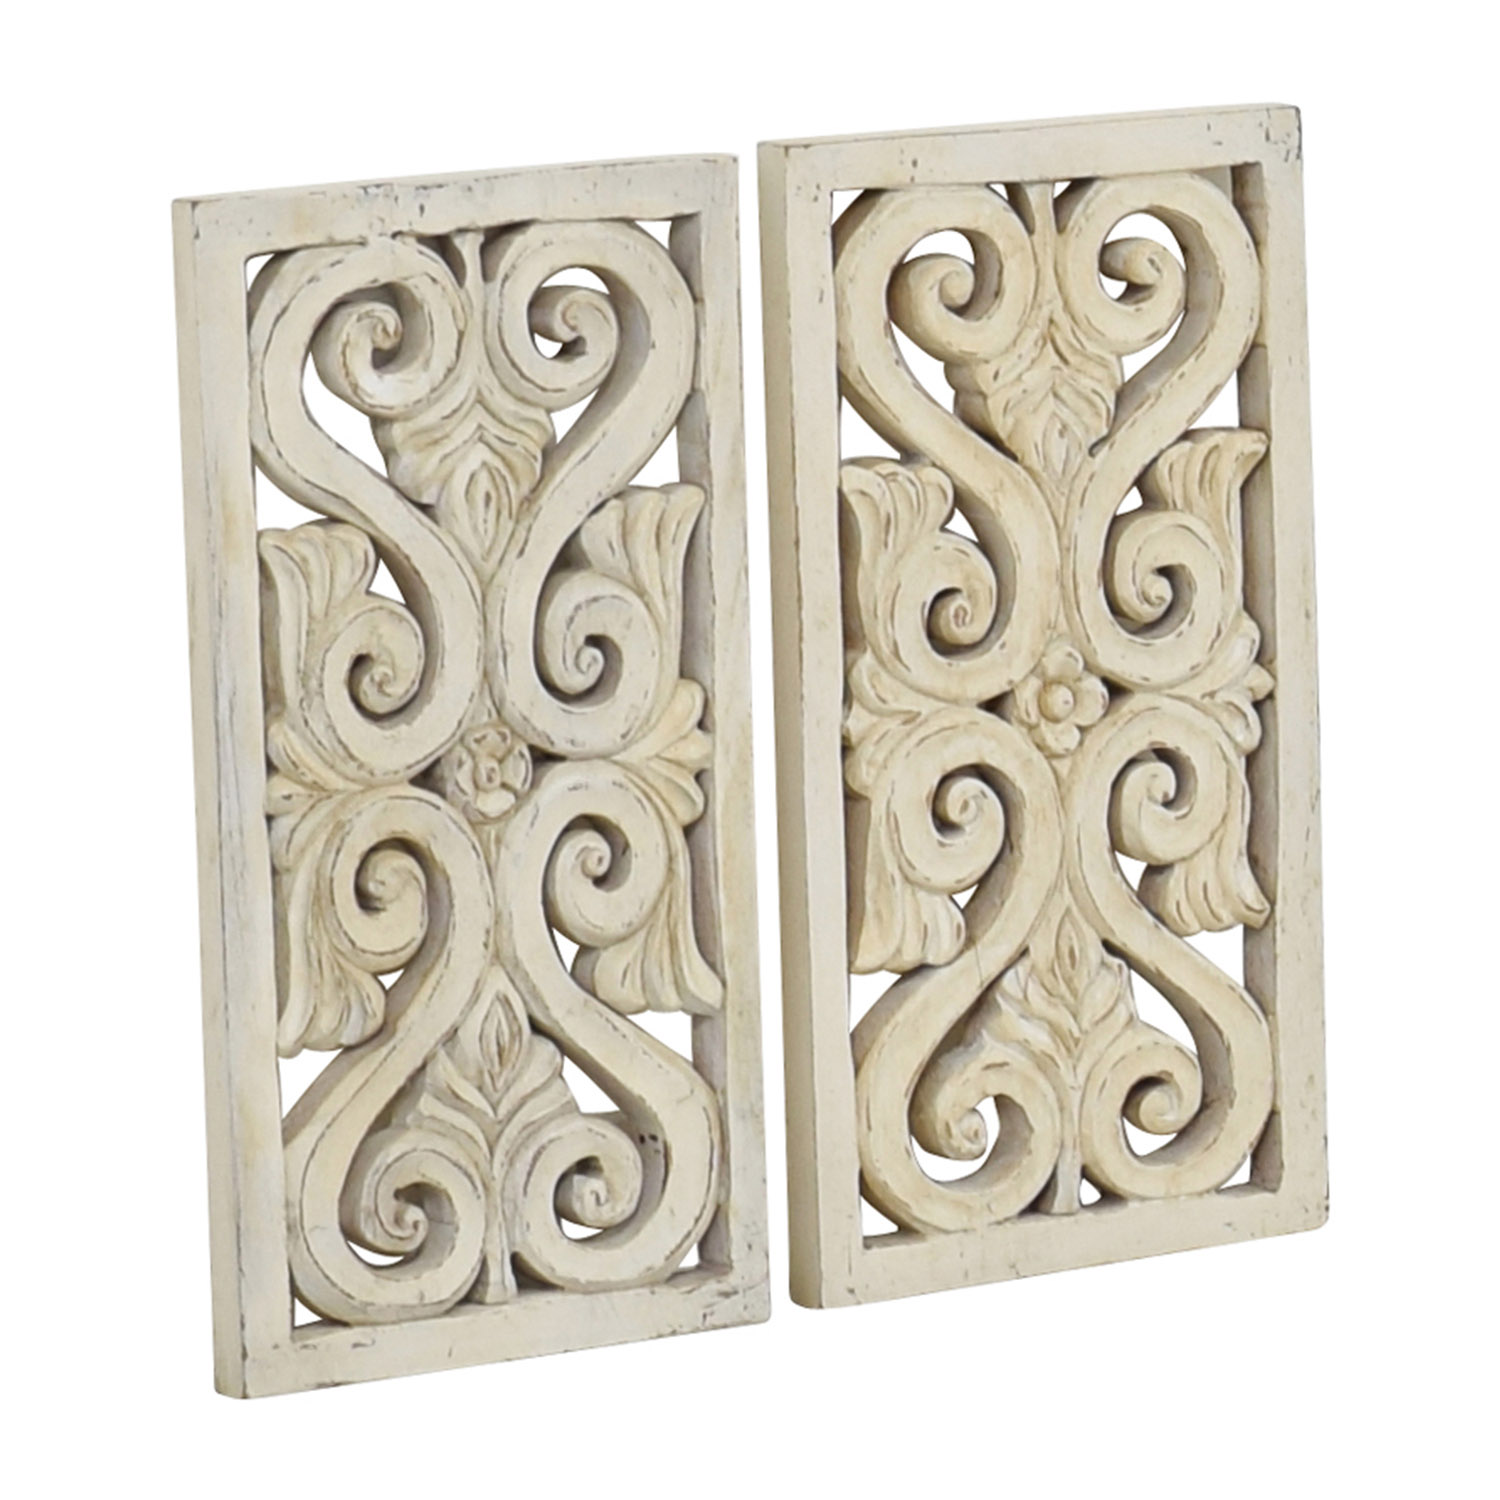 shop Distressed White Wood Wall Sculpture Decor